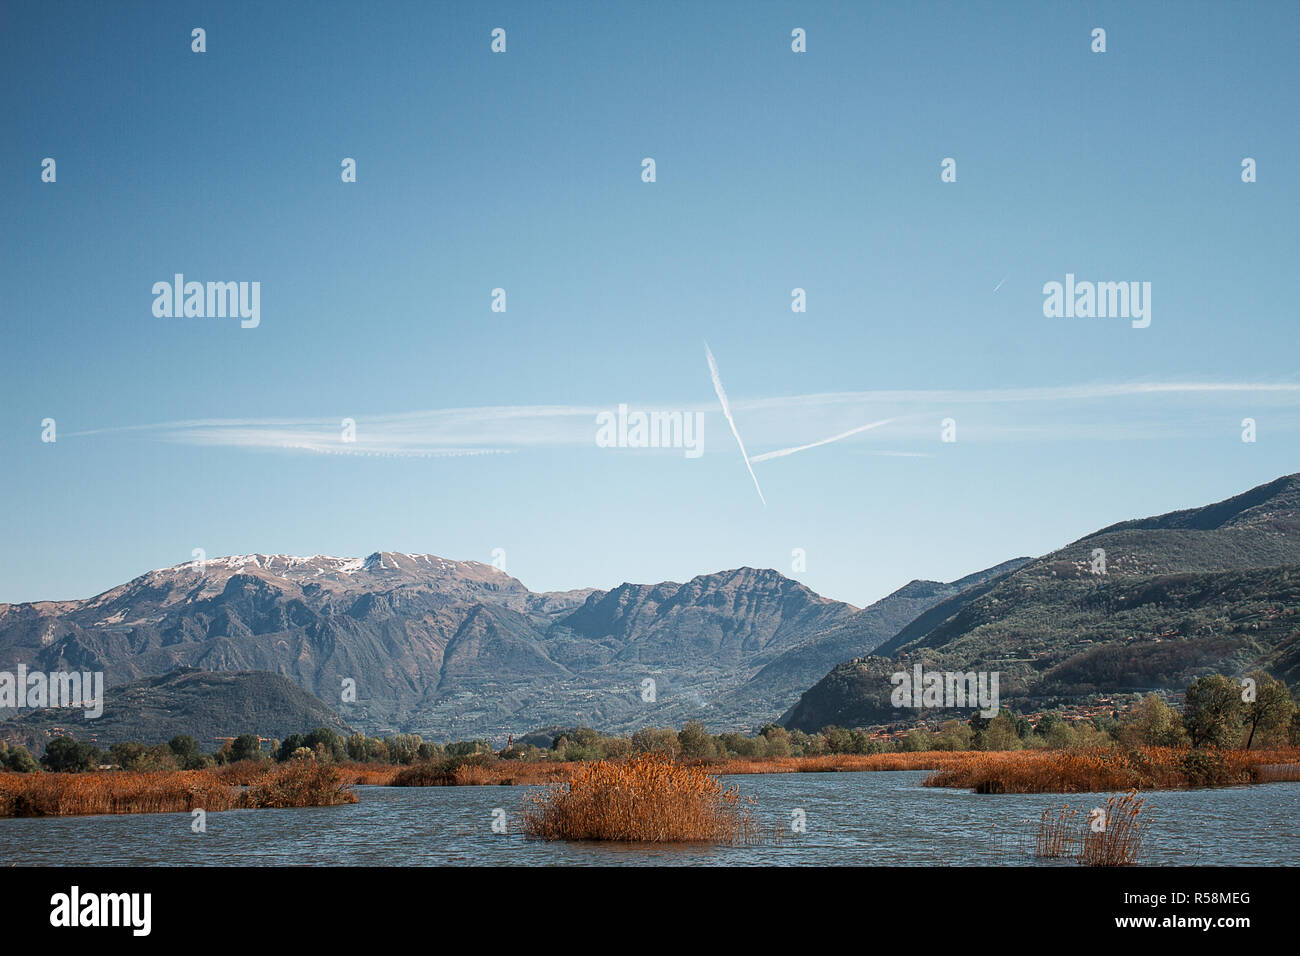 Landscape of Torbiere del Sebino Natural Reserve in Lombardy. Iseo Lake. Travel destination in Italy - Stock Image